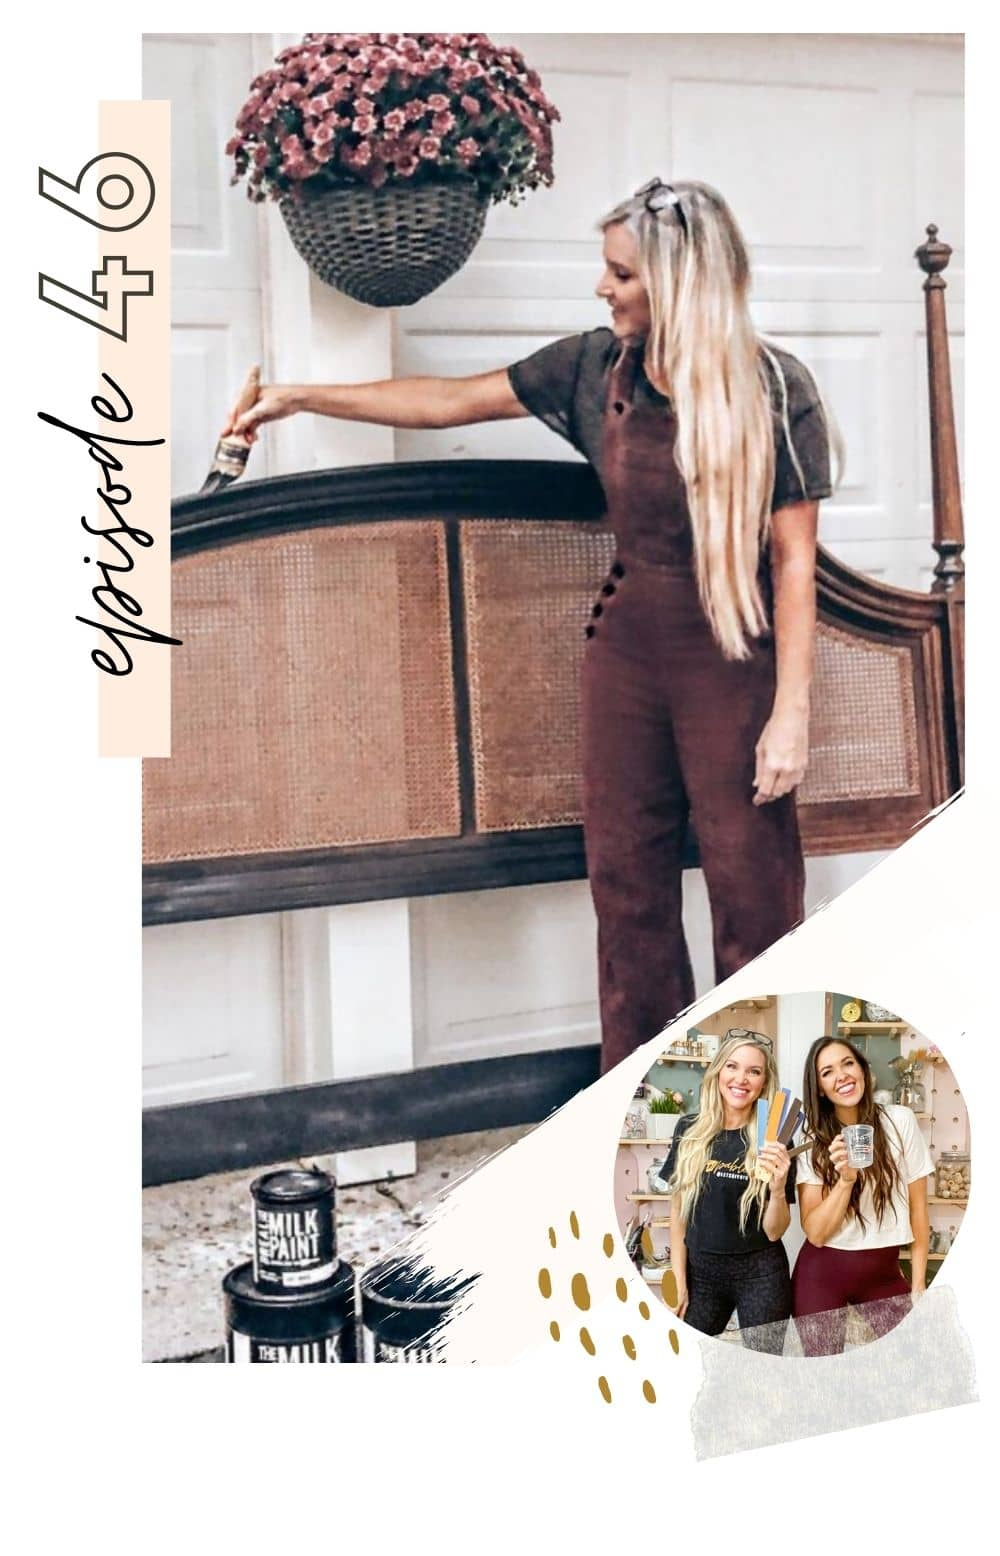 Furniture flipping tips featured by top interior design blogger and podcast, NEVER SKIP BRUNCH